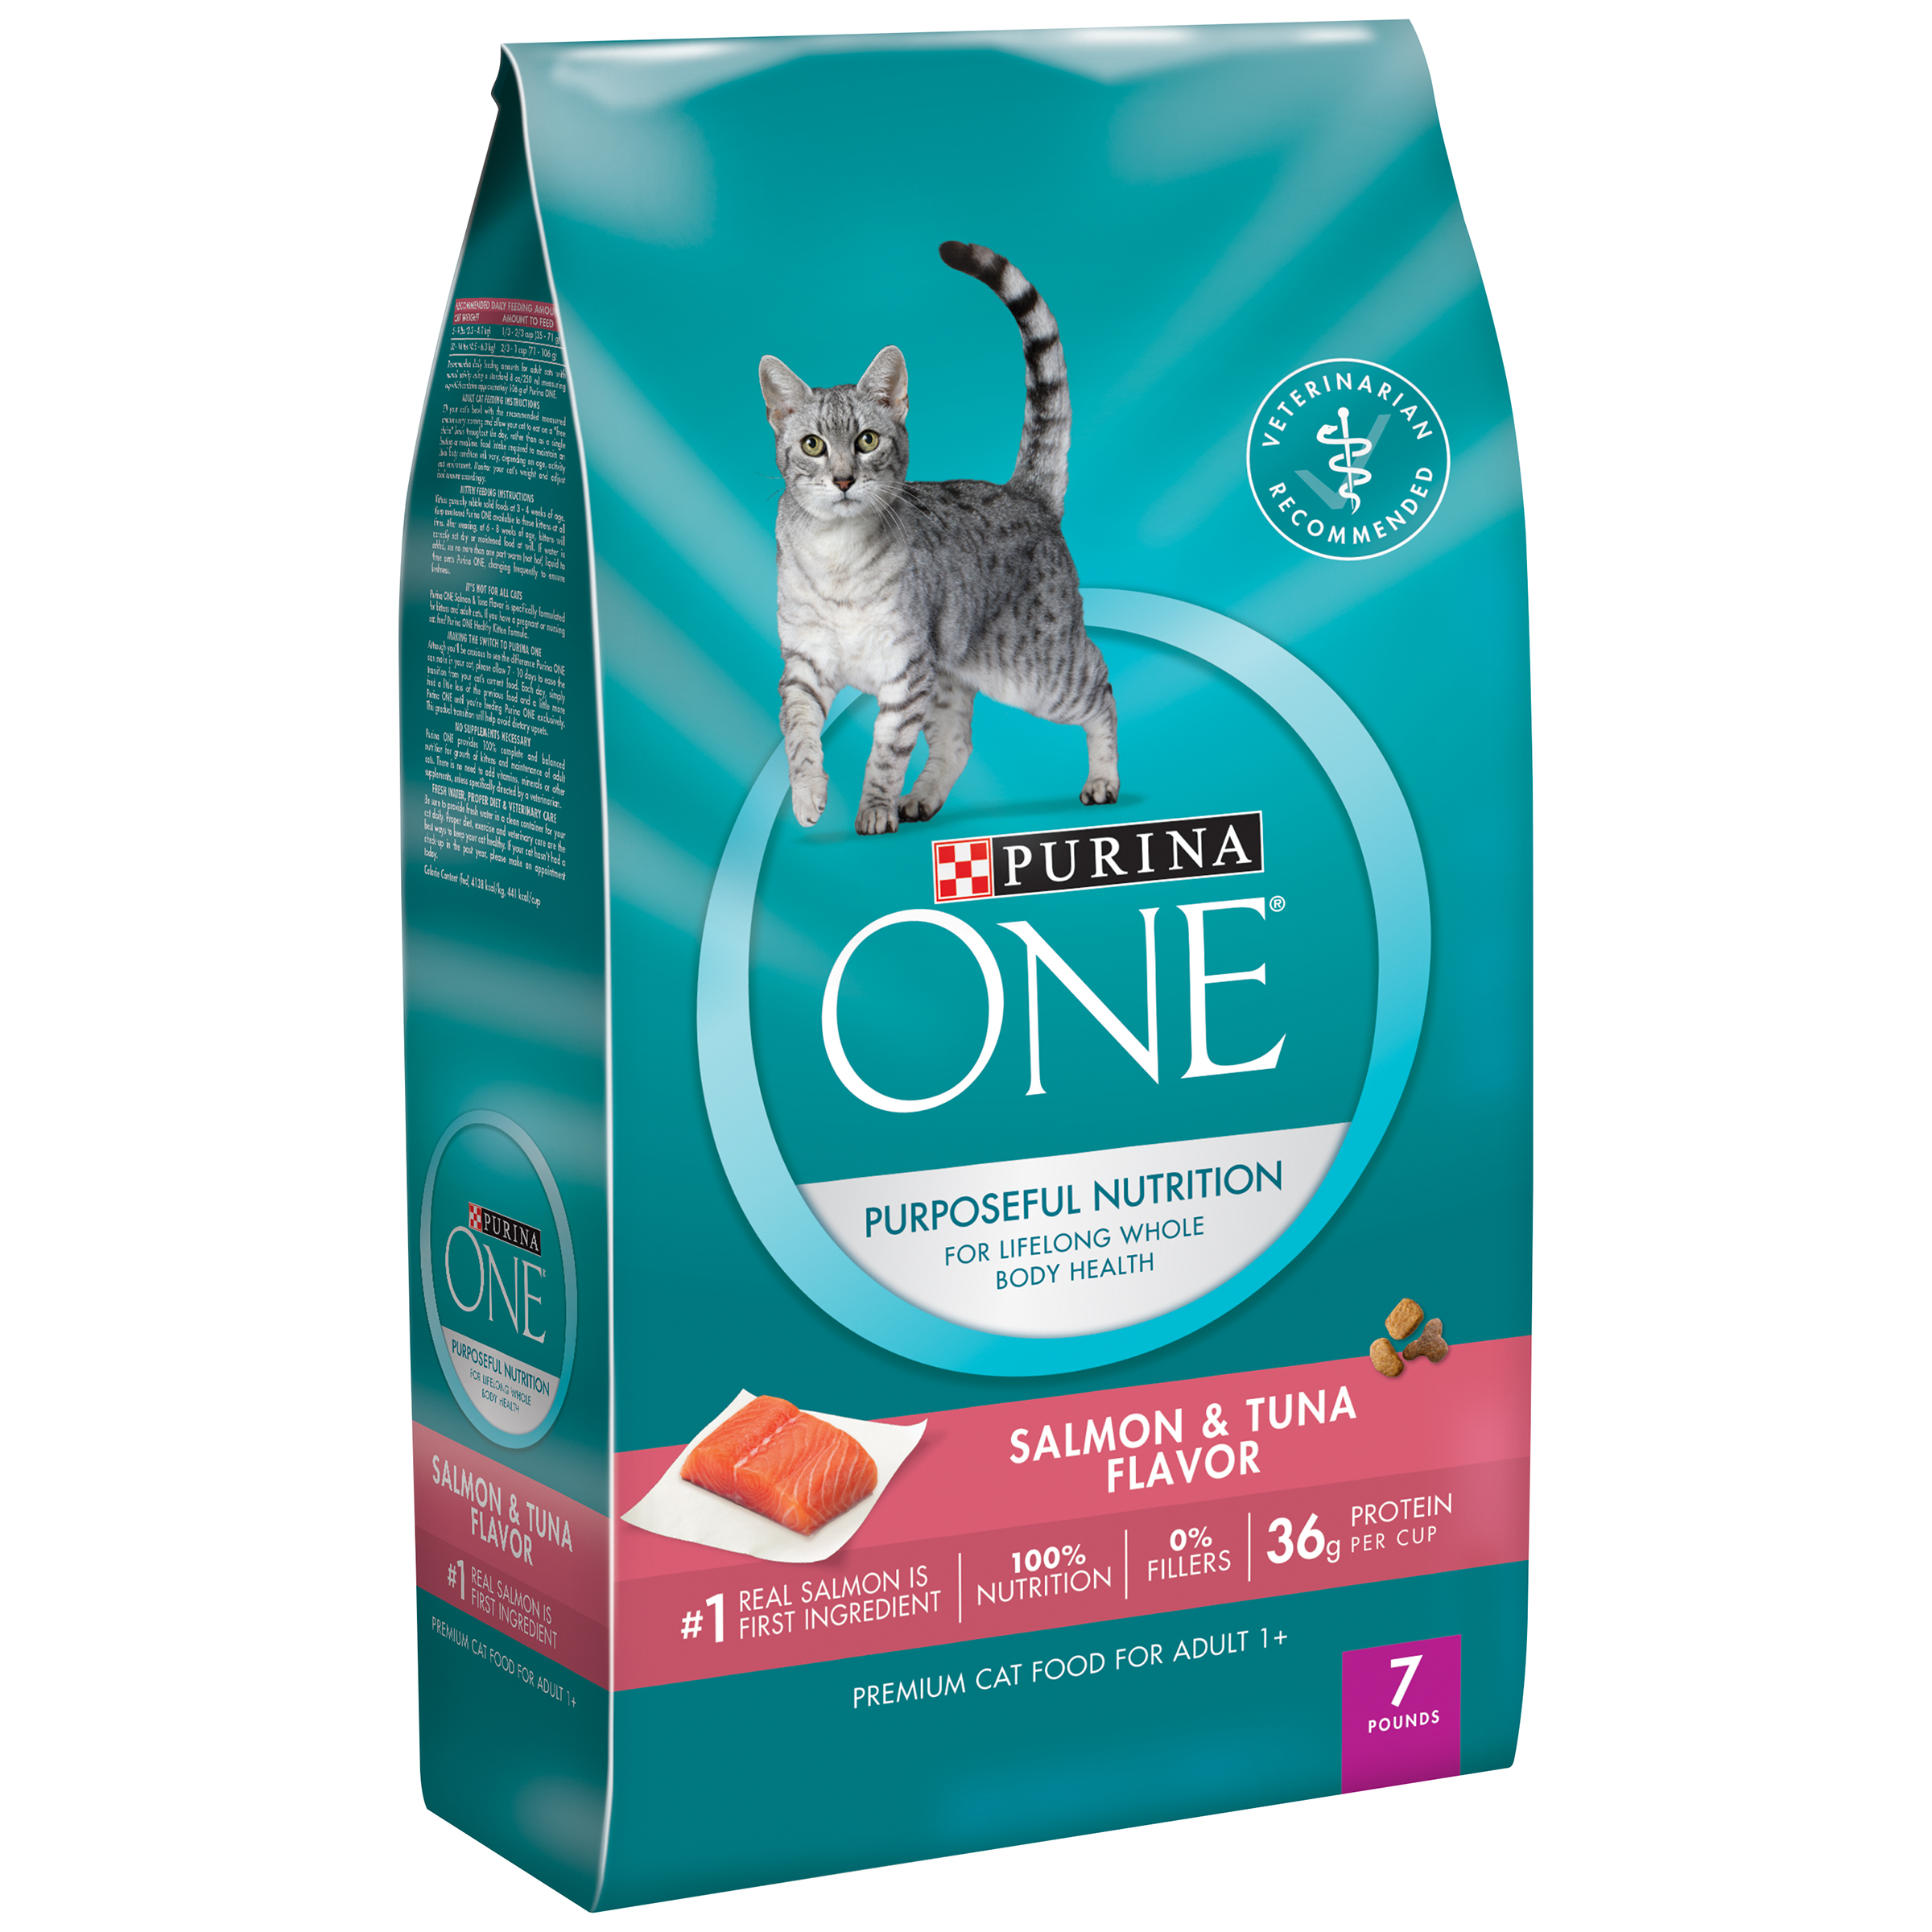 Purina ONE Salmon & Tuna Flavor Cat Food 7 lb. Bag